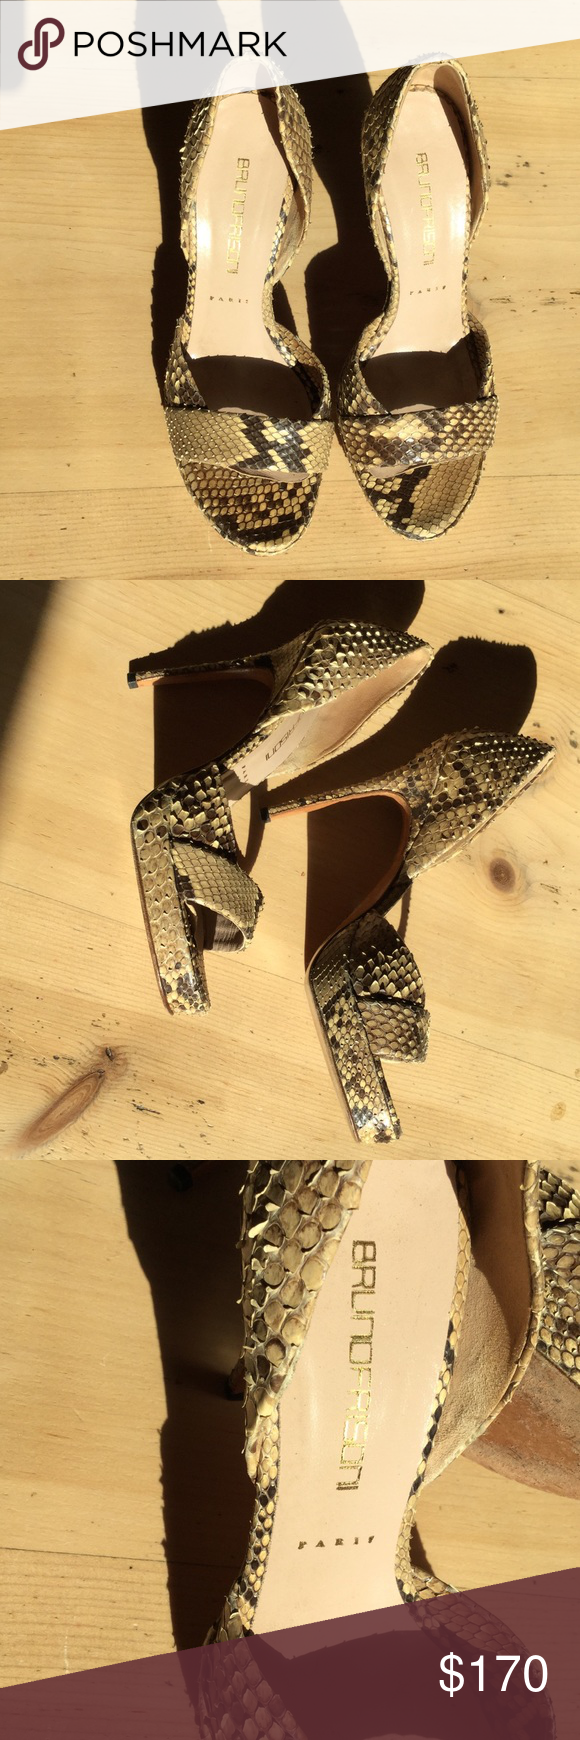 Bruno Frisoni Python high heeled stilettos Gorgeous authentic Python stilettos. Worn once.  A few scuffs on sole but python is in excellent condition. bruno frisoni Shoes Heels